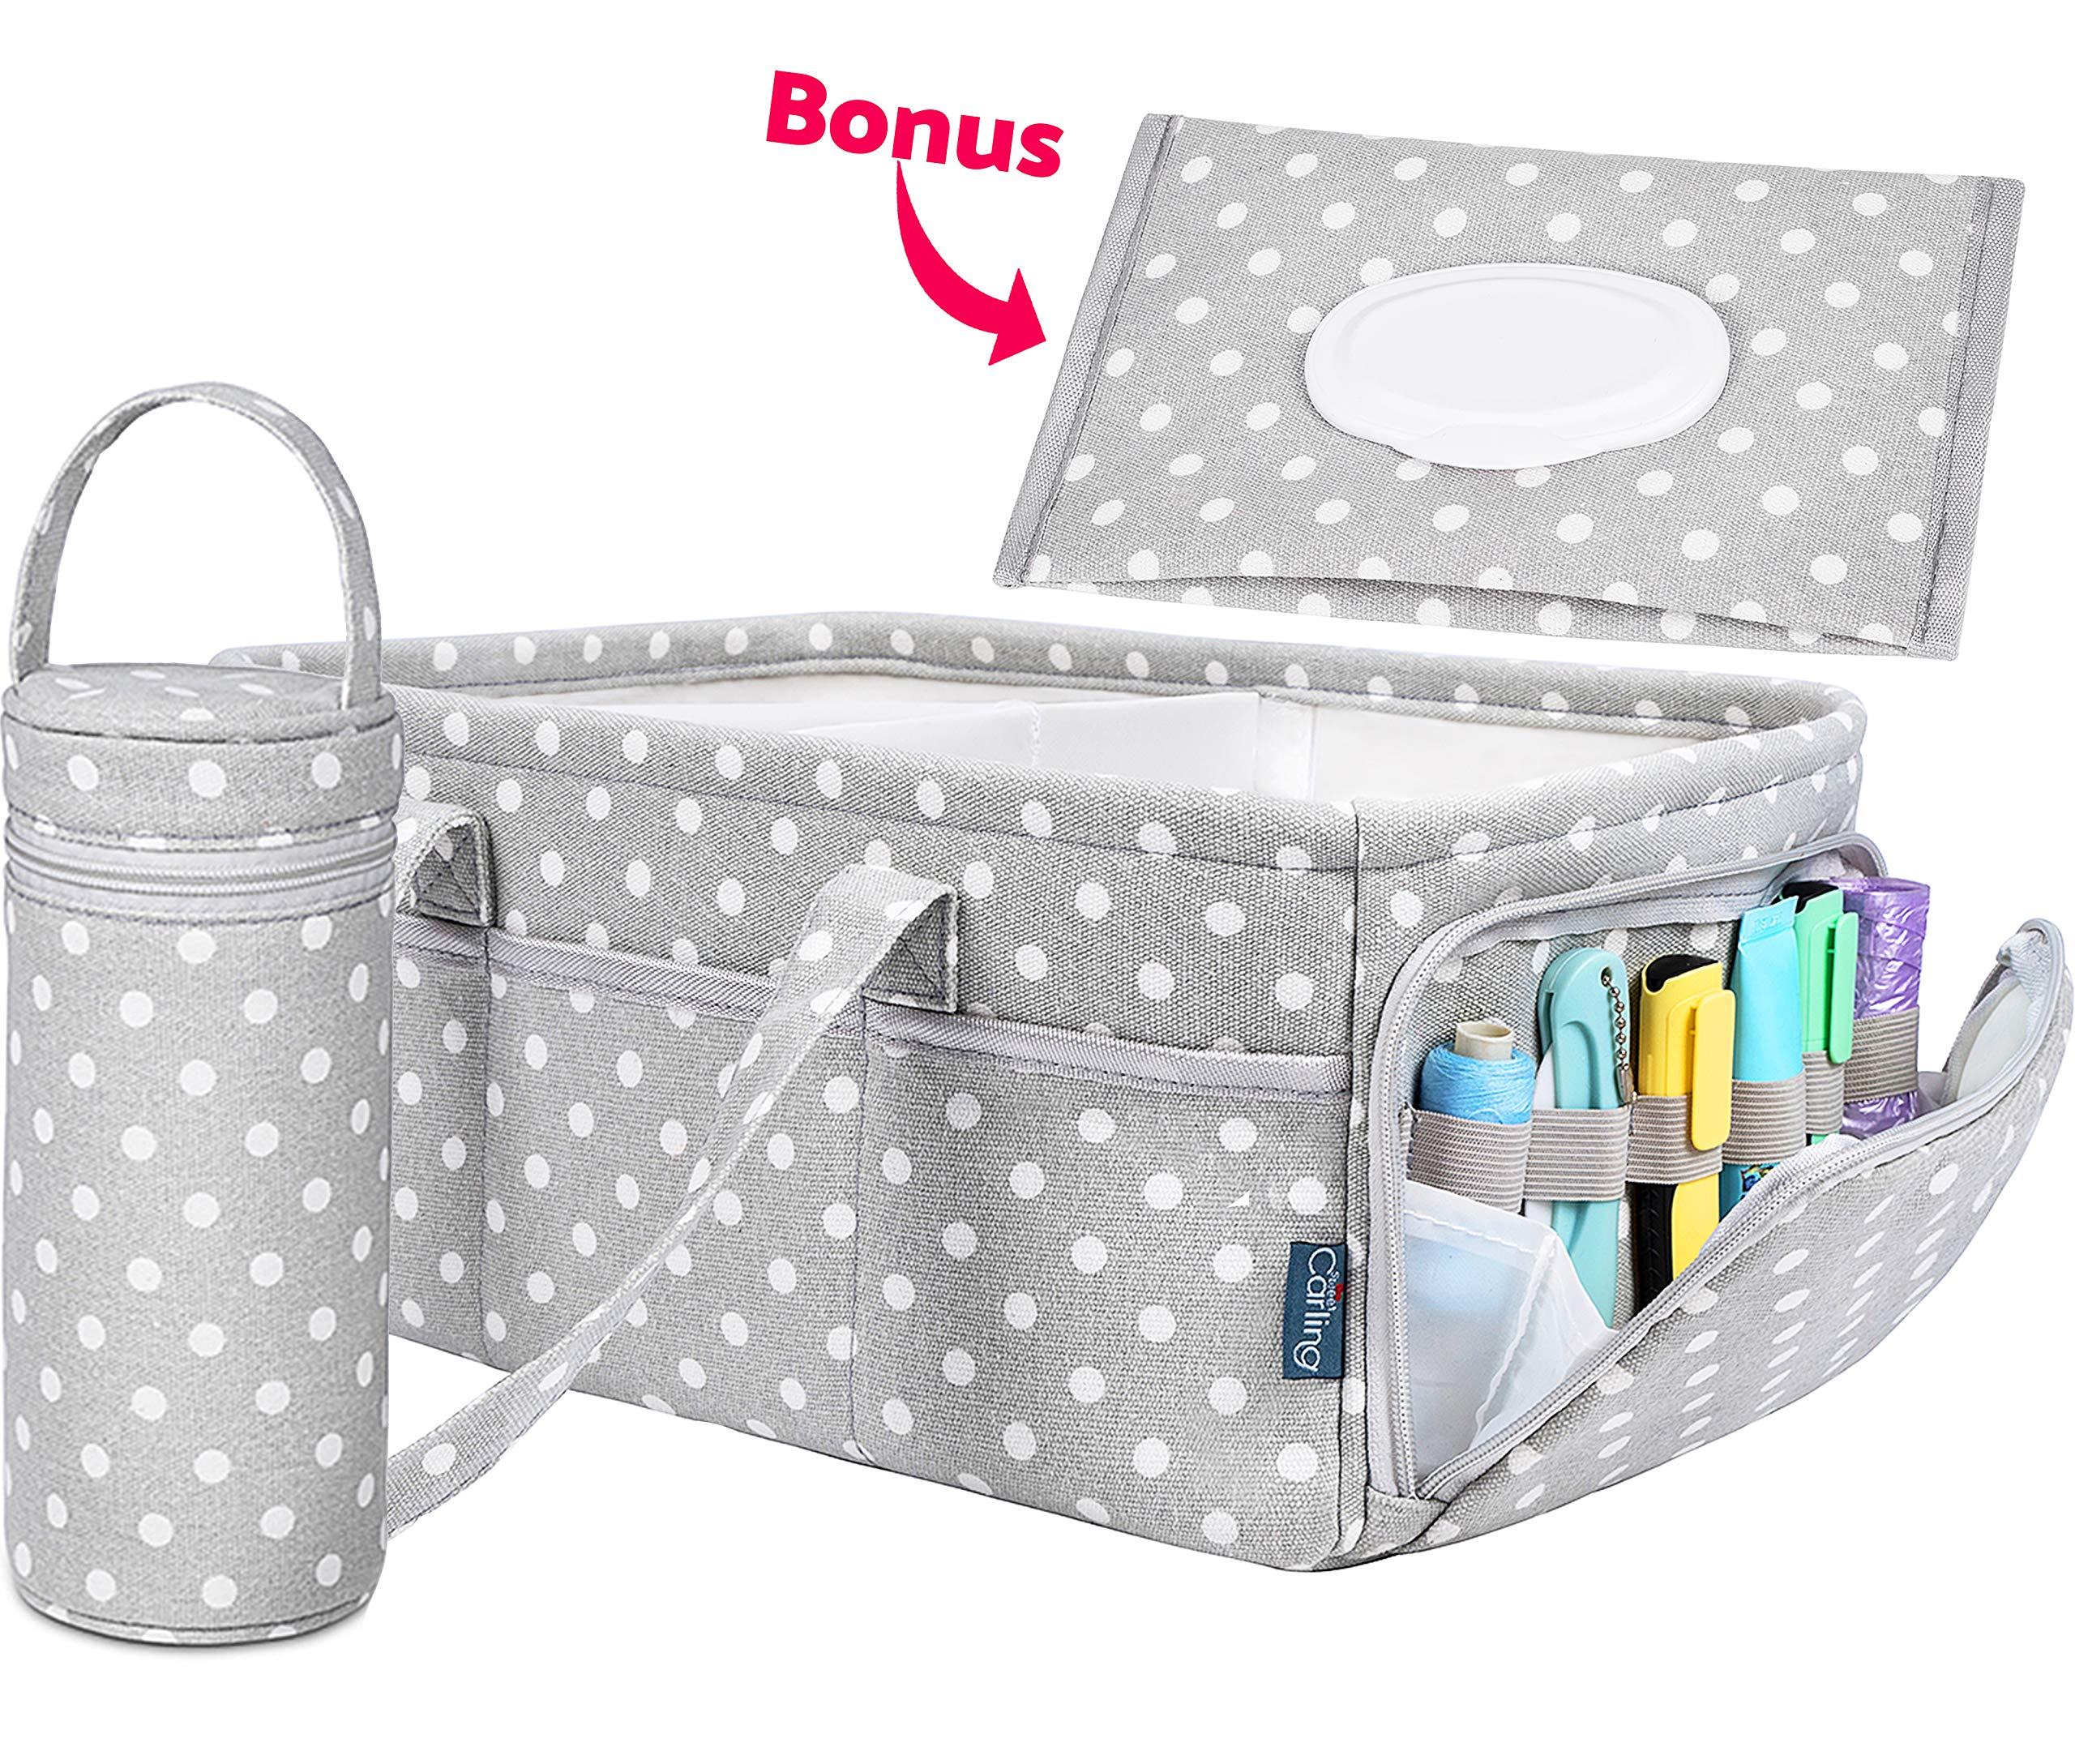 Baby Diaper Caddy Organizer | Baby Shower Registry Must Haves For Boy Girl Gifts Newborn Essentials Basket | Nursery Decor Changing Table Storage For New Mom With Bottle Cooler Bag by Sweet Carling